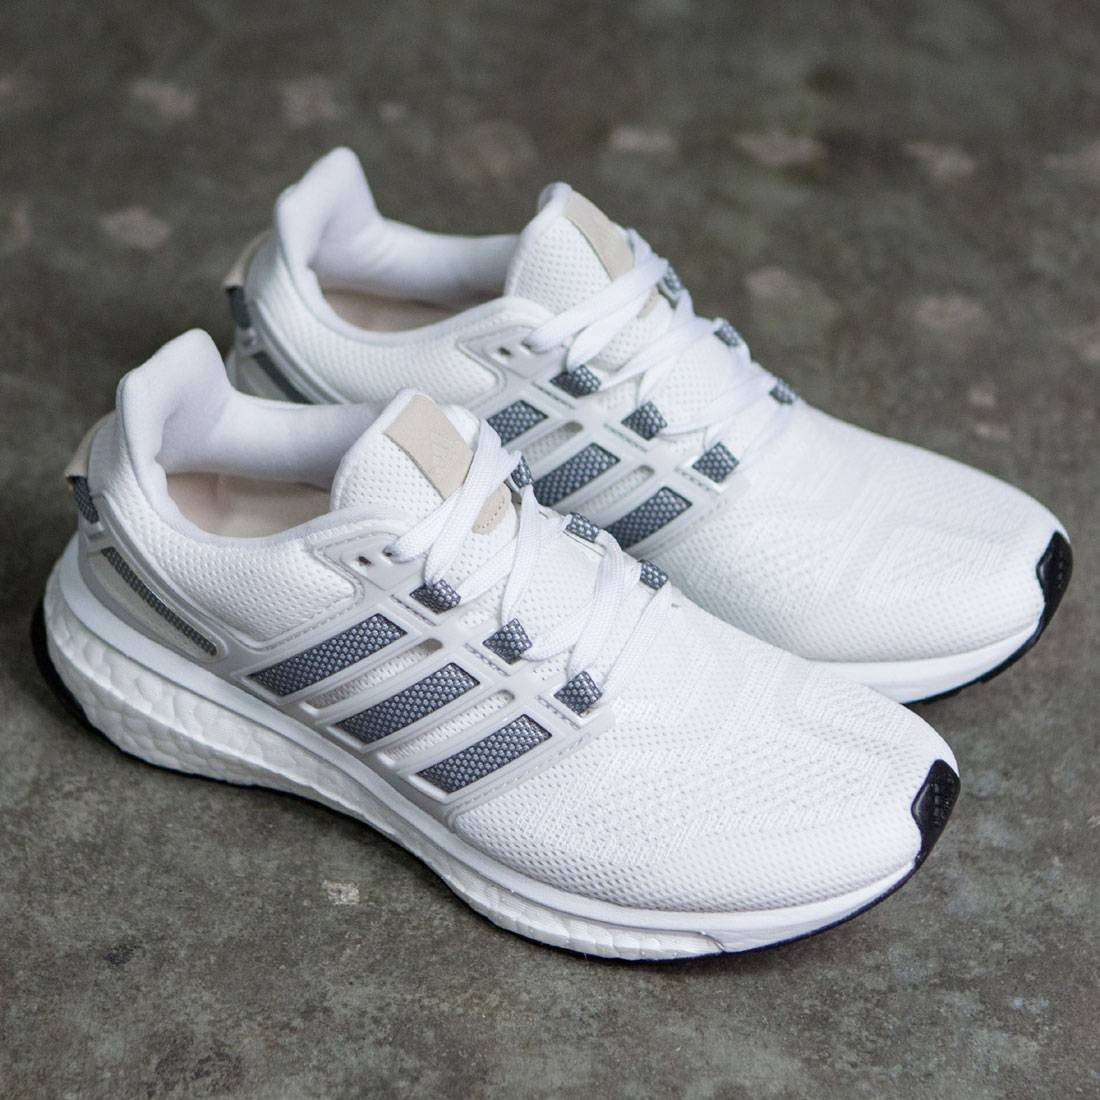 Vigilancia Meloso Bermad  Adidas Women Energy Boost 3 white charcoal solid grey crystal white